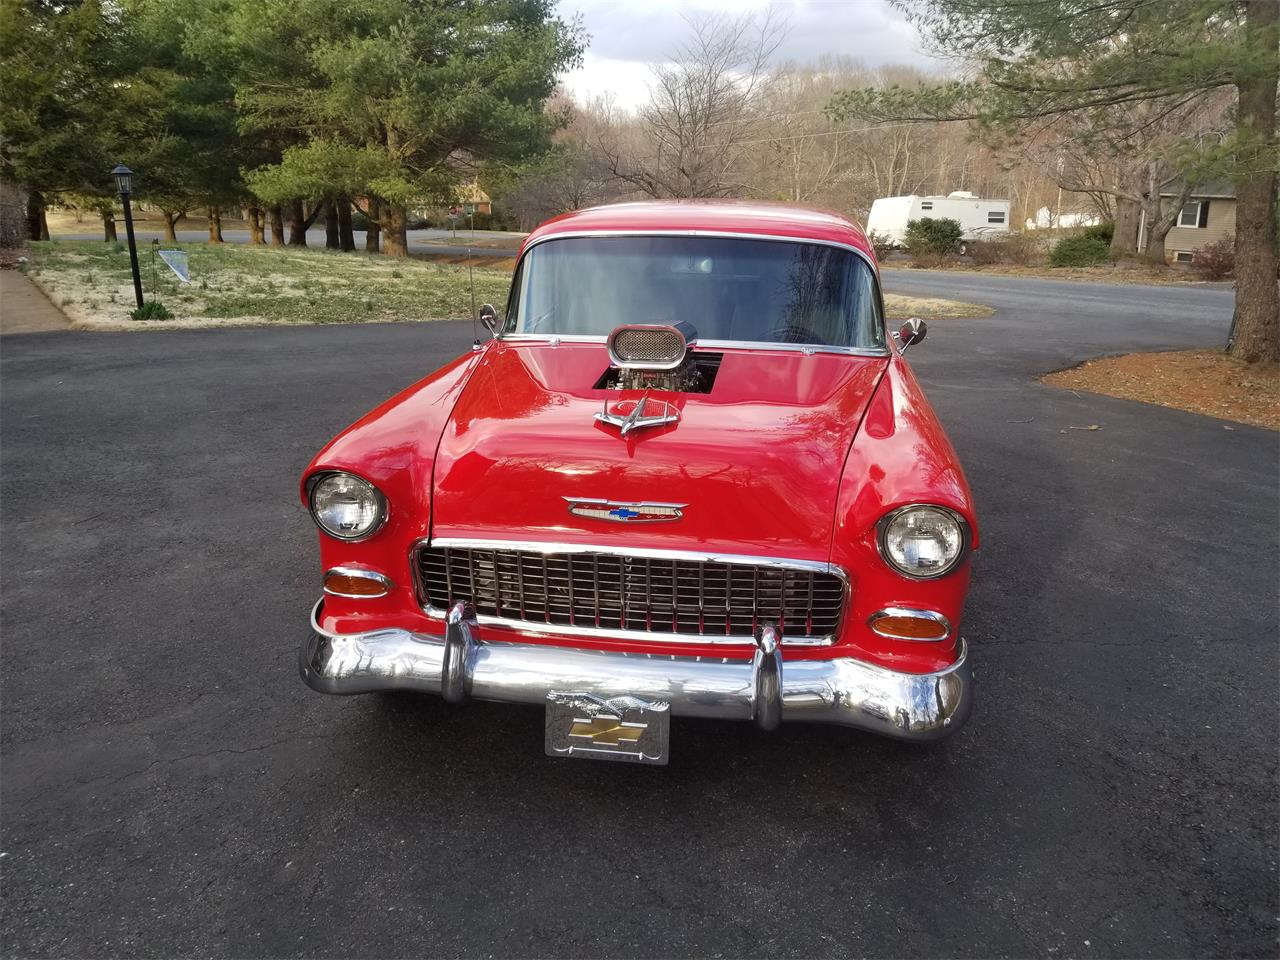 1955 Chevrolet Sedan Delivery for sale in Warrenton, VA – photo 2